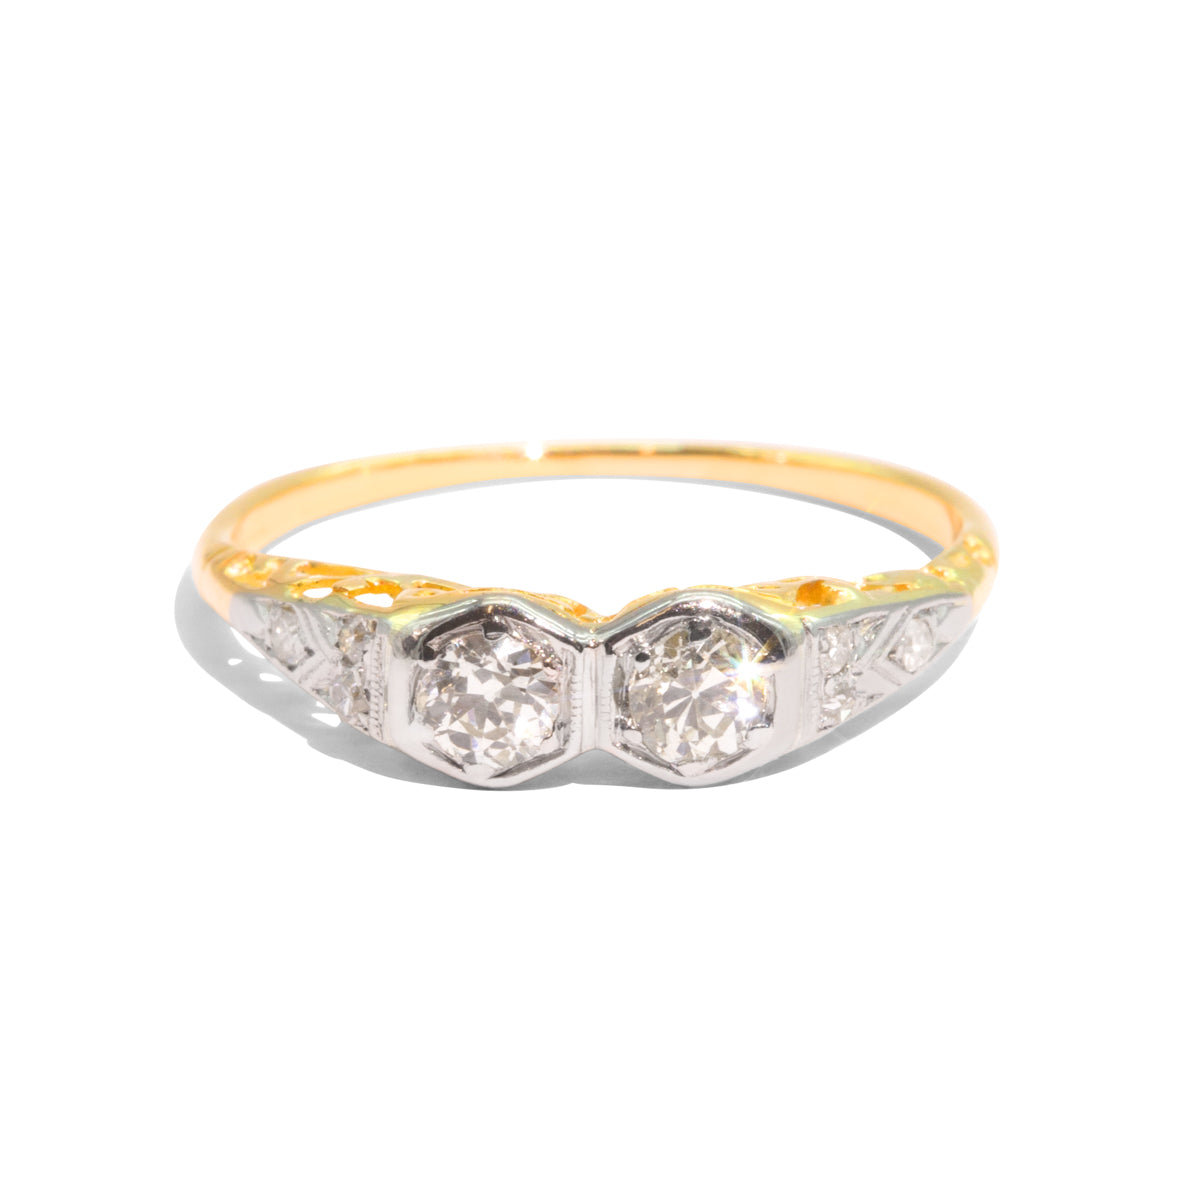 The Peyton Vintage Diamond Ring